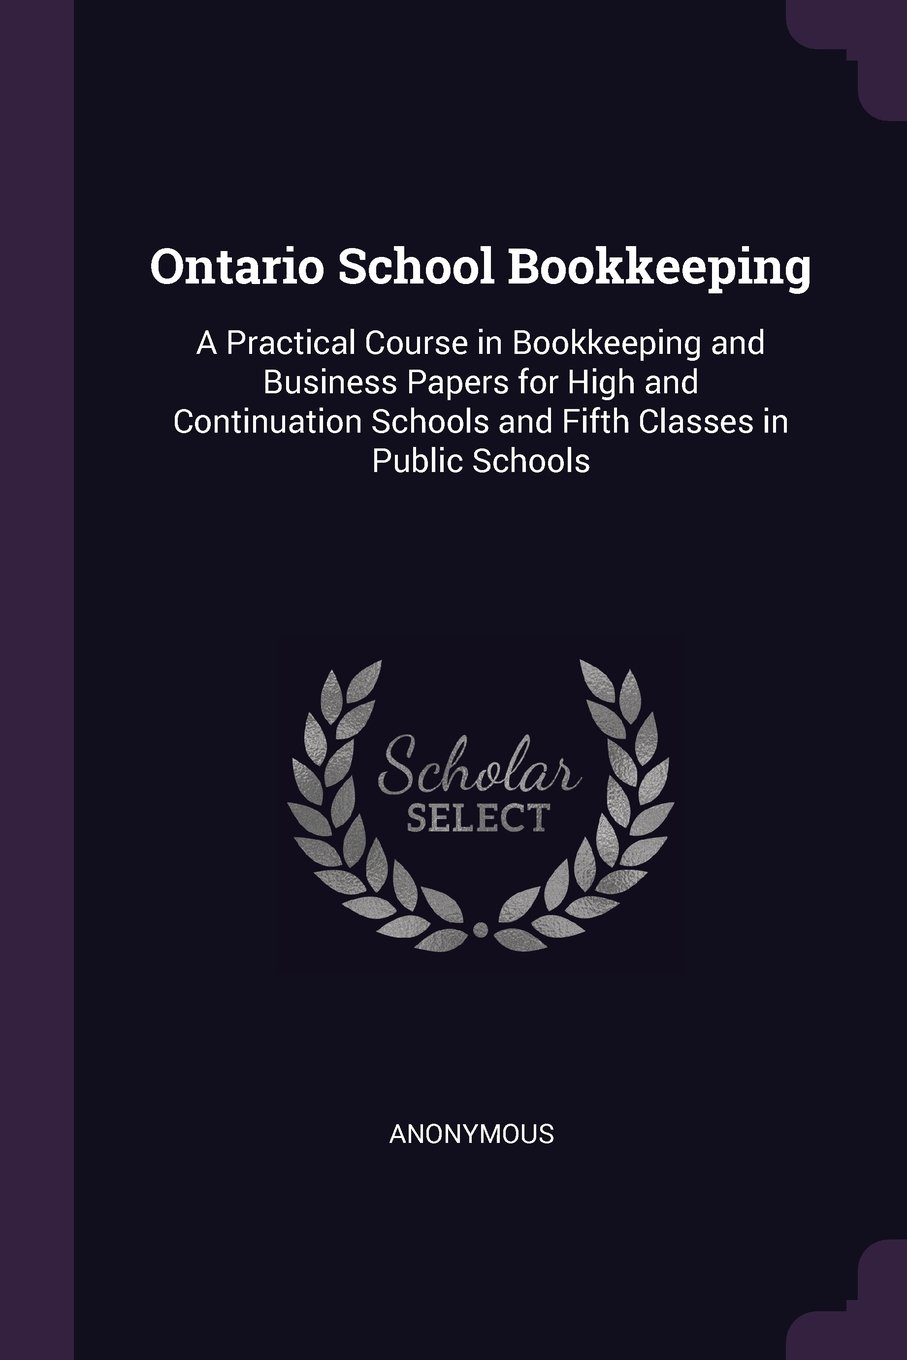 Ontario School Bookkeeping: A Practical Course in Bookkeeping and Business Papers for High and Continuation Schools and Fifth Classes in Public Schools pdf